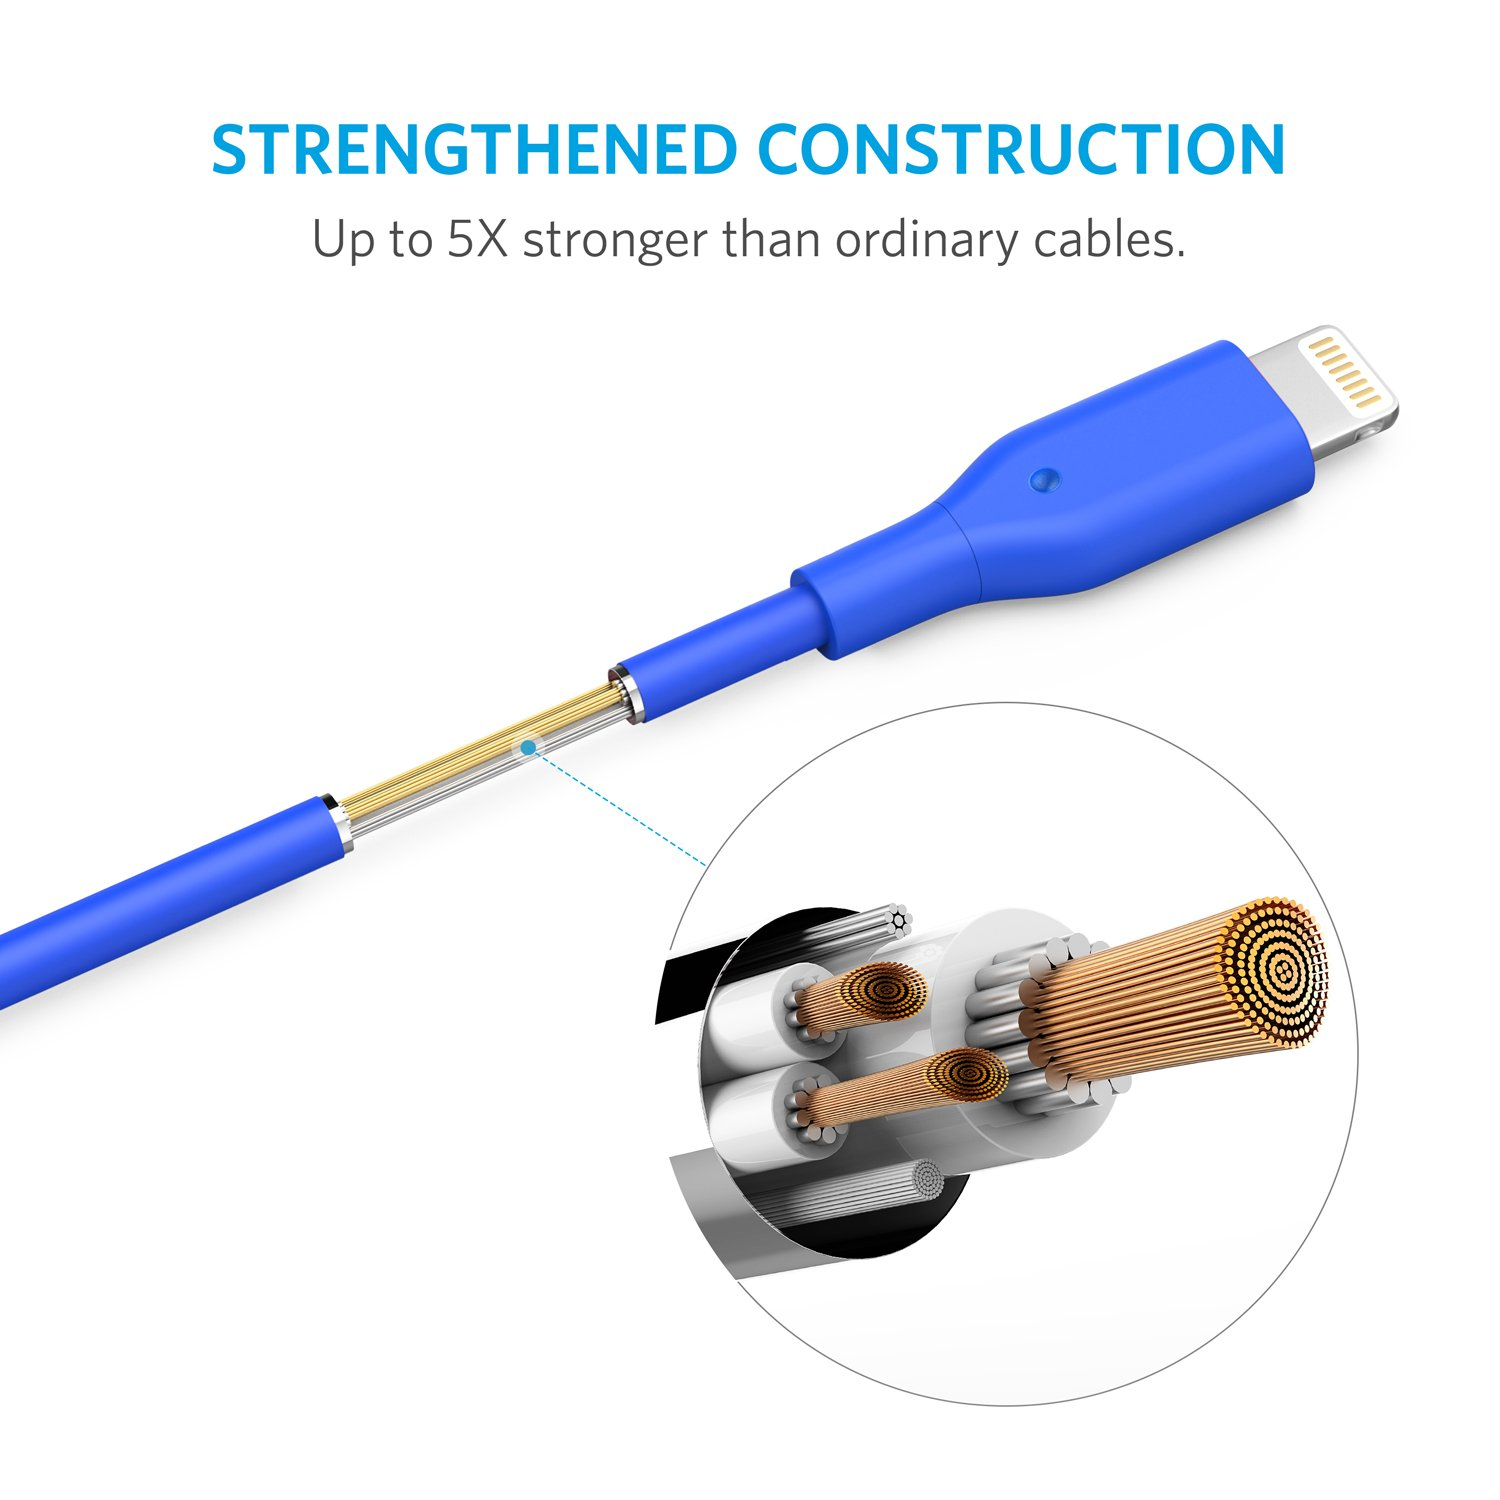 Anker iPhone Charger Anker Powerline 6ft Lightning Cable MFi Certified USB ChargeSync Cord for